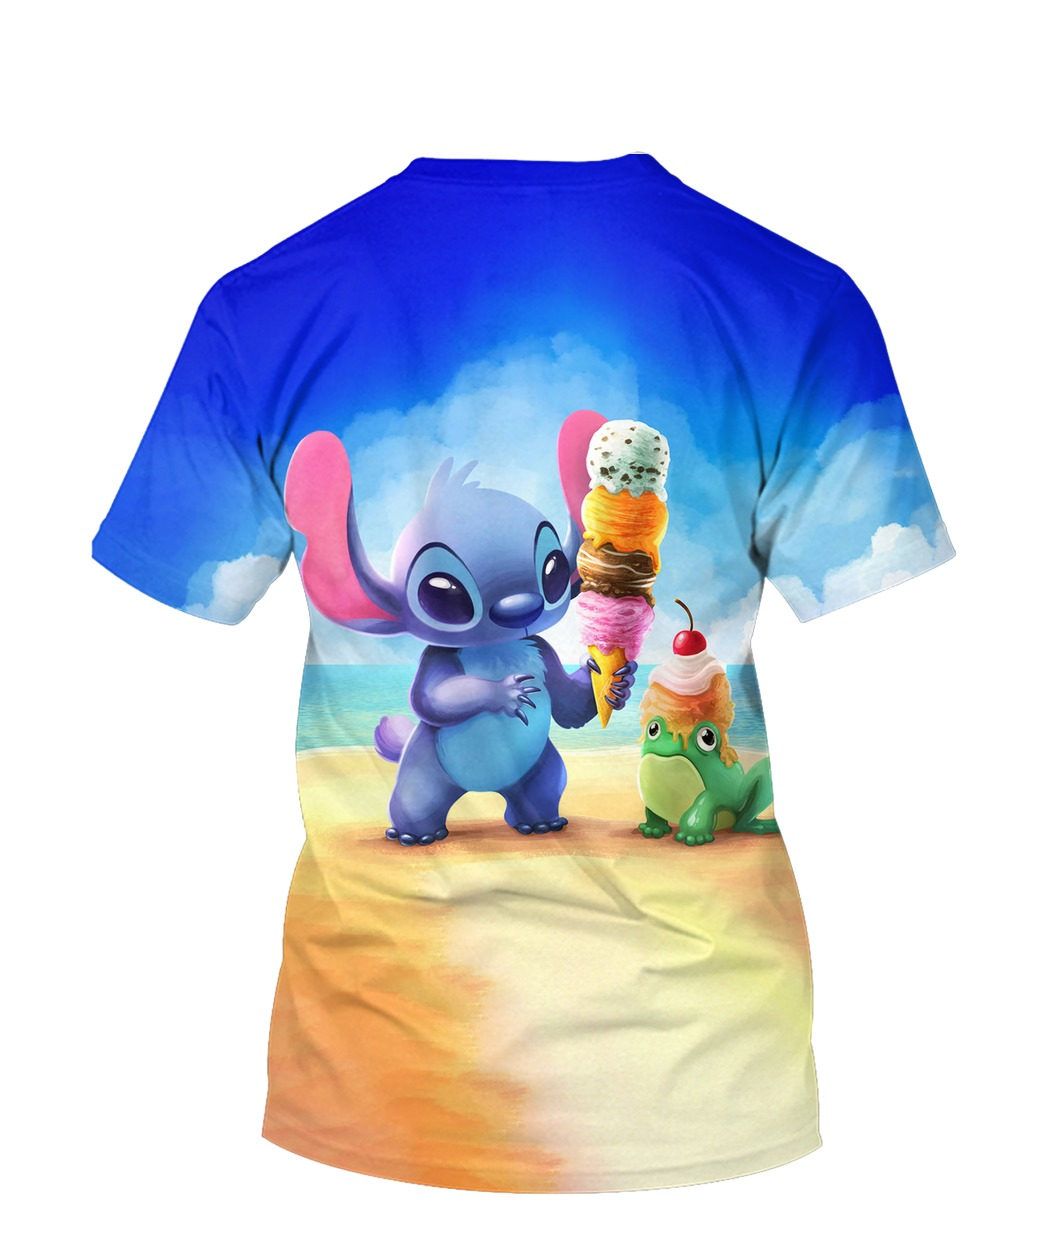 Stitch and ice-cream all over printed tshirt - back